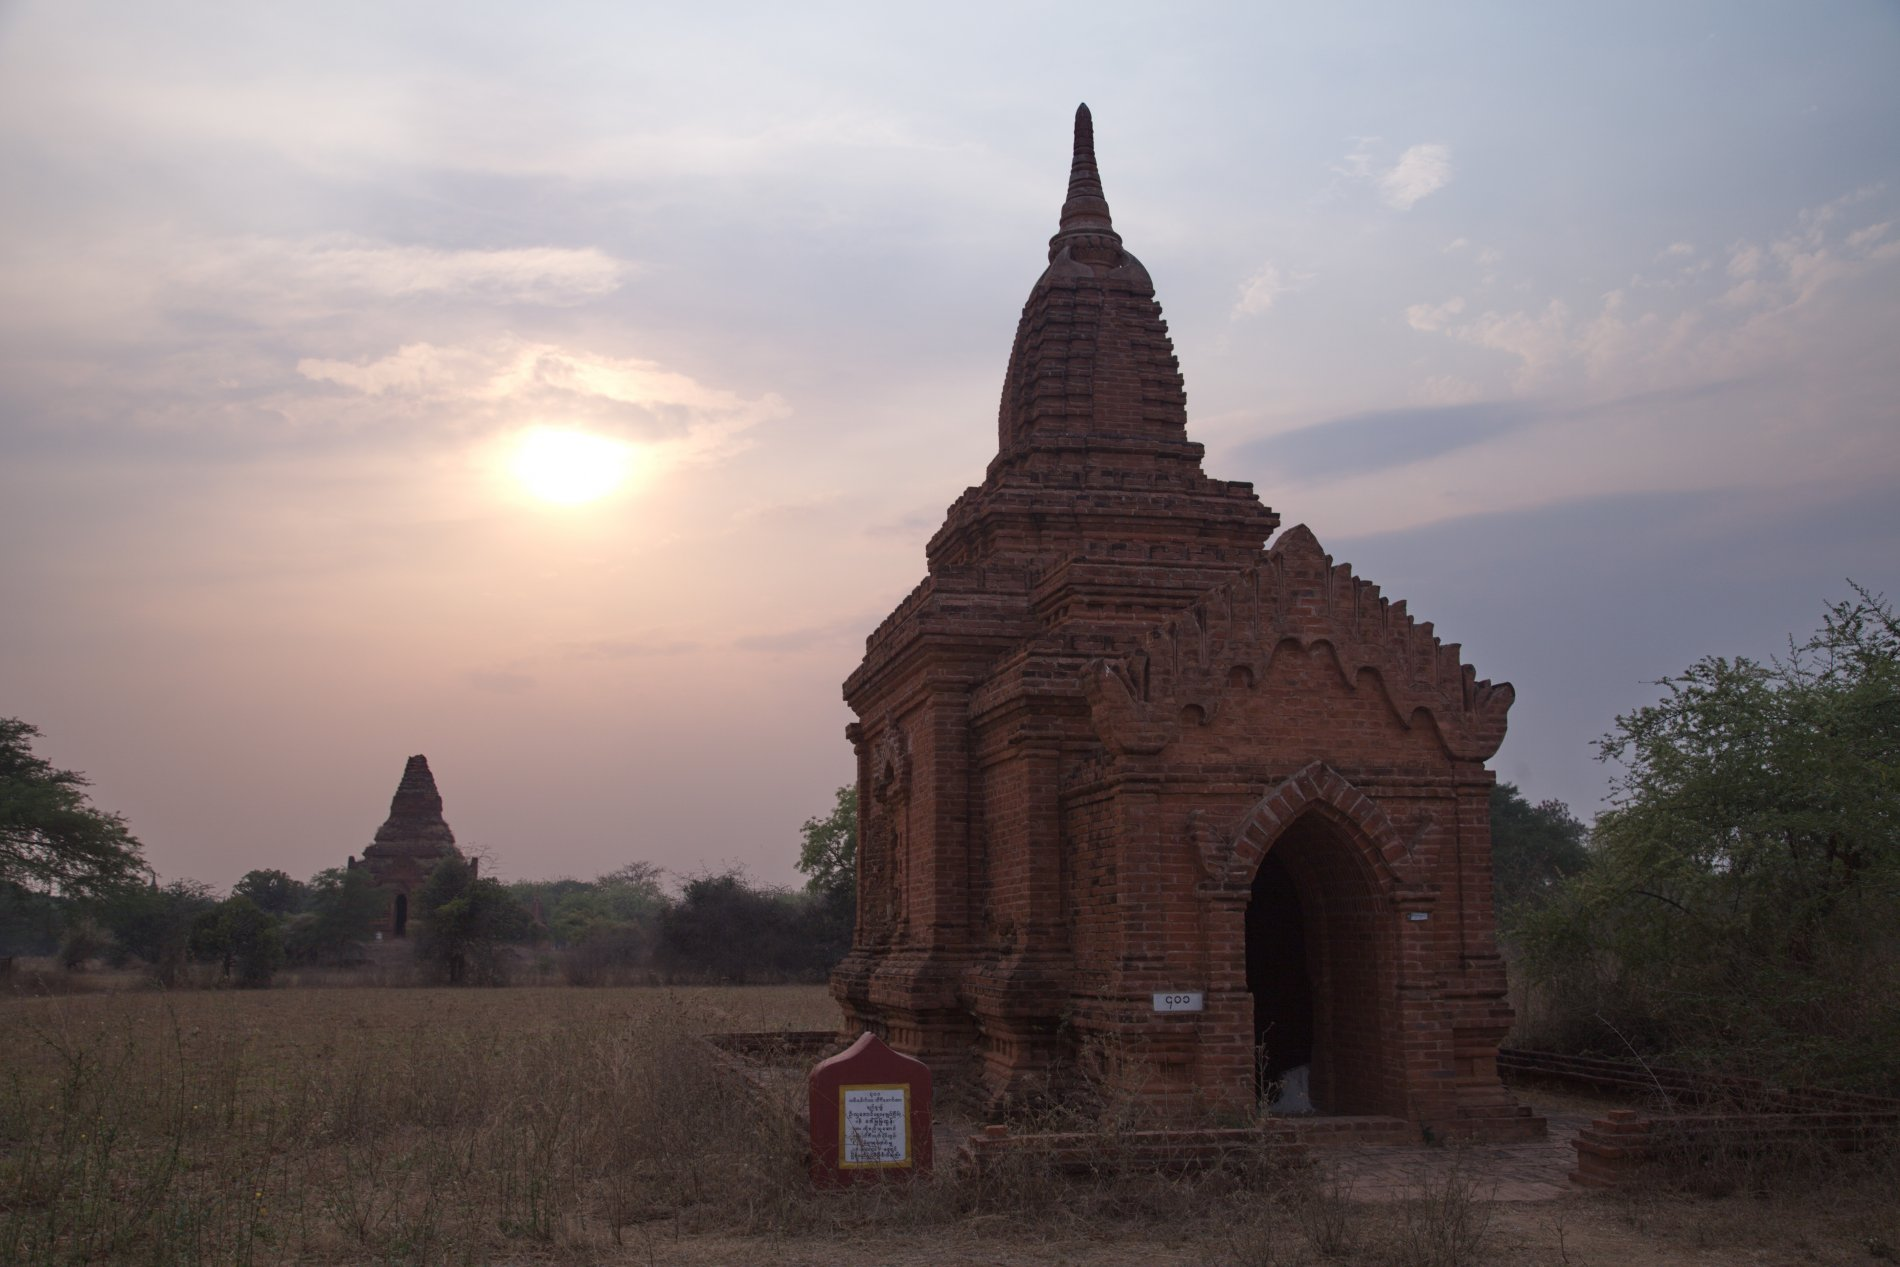 Bagan_013.jpg-commment